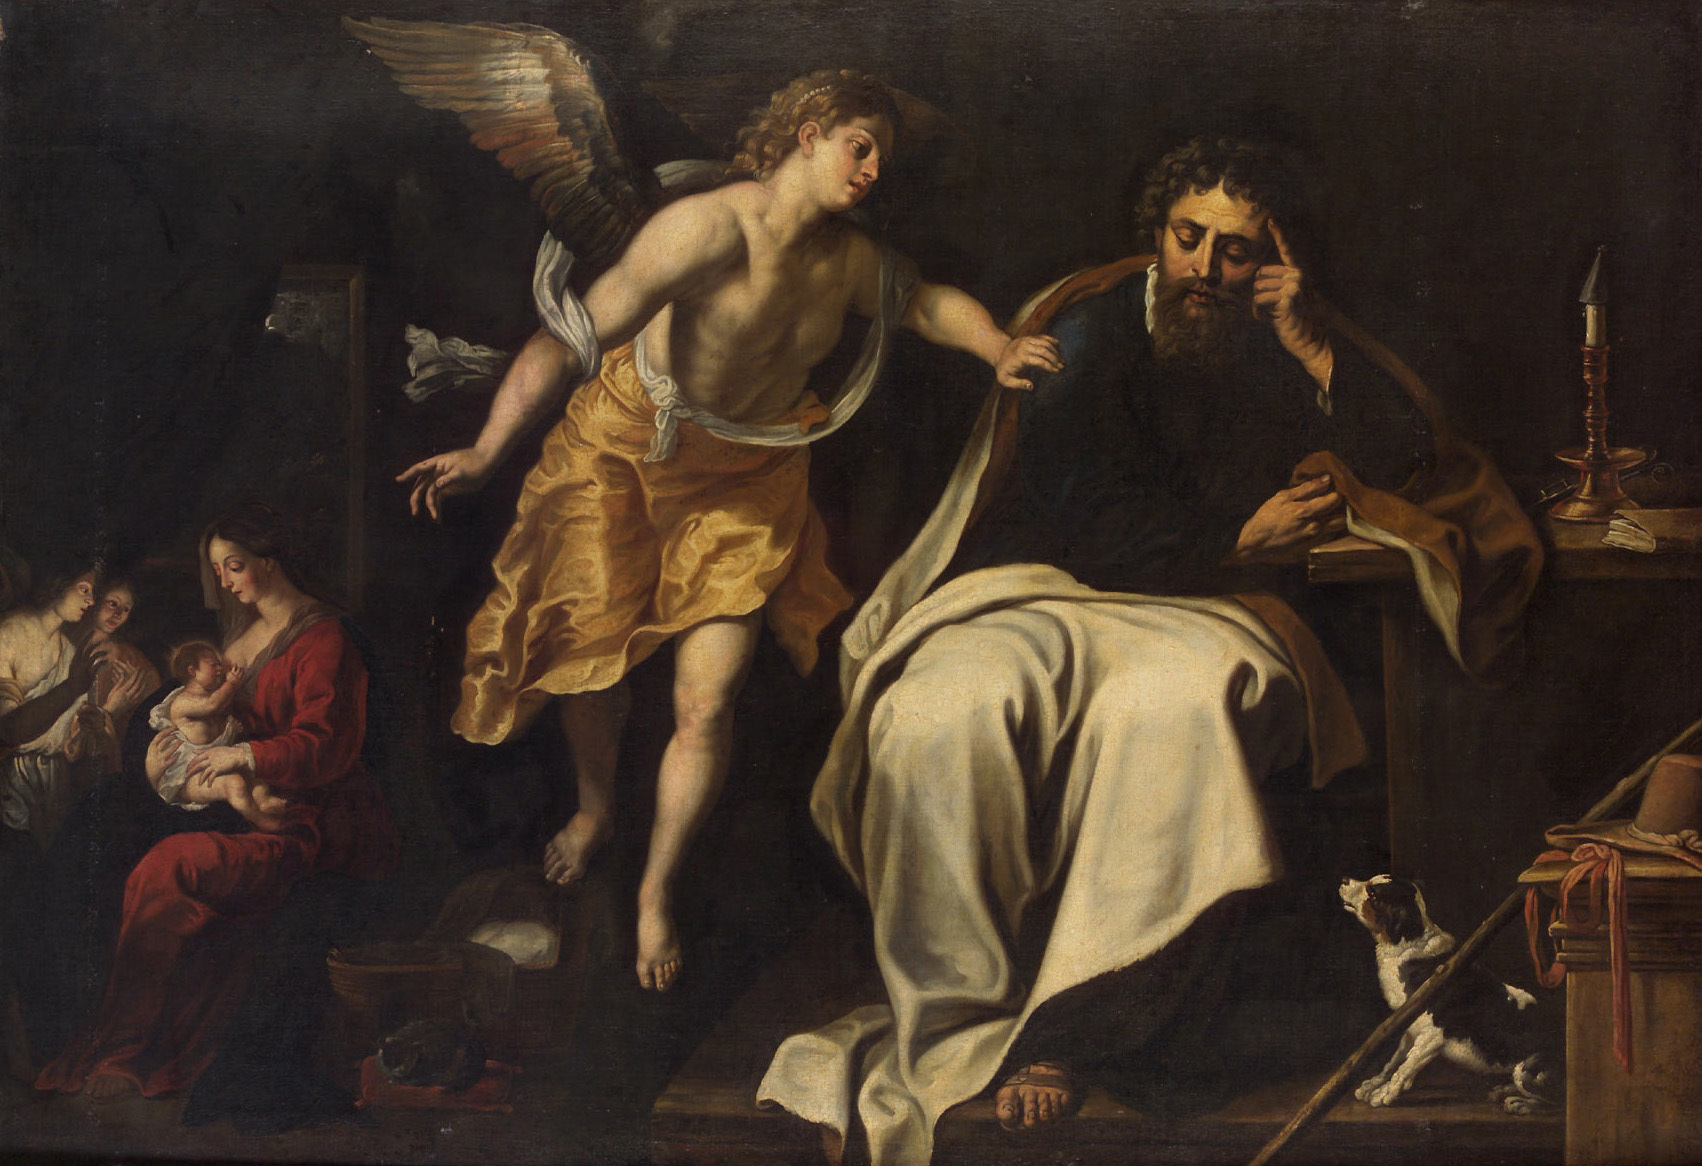 Dream of St Joseph, c. 1625-1630, by Gerard Seghers (Wikimedia)